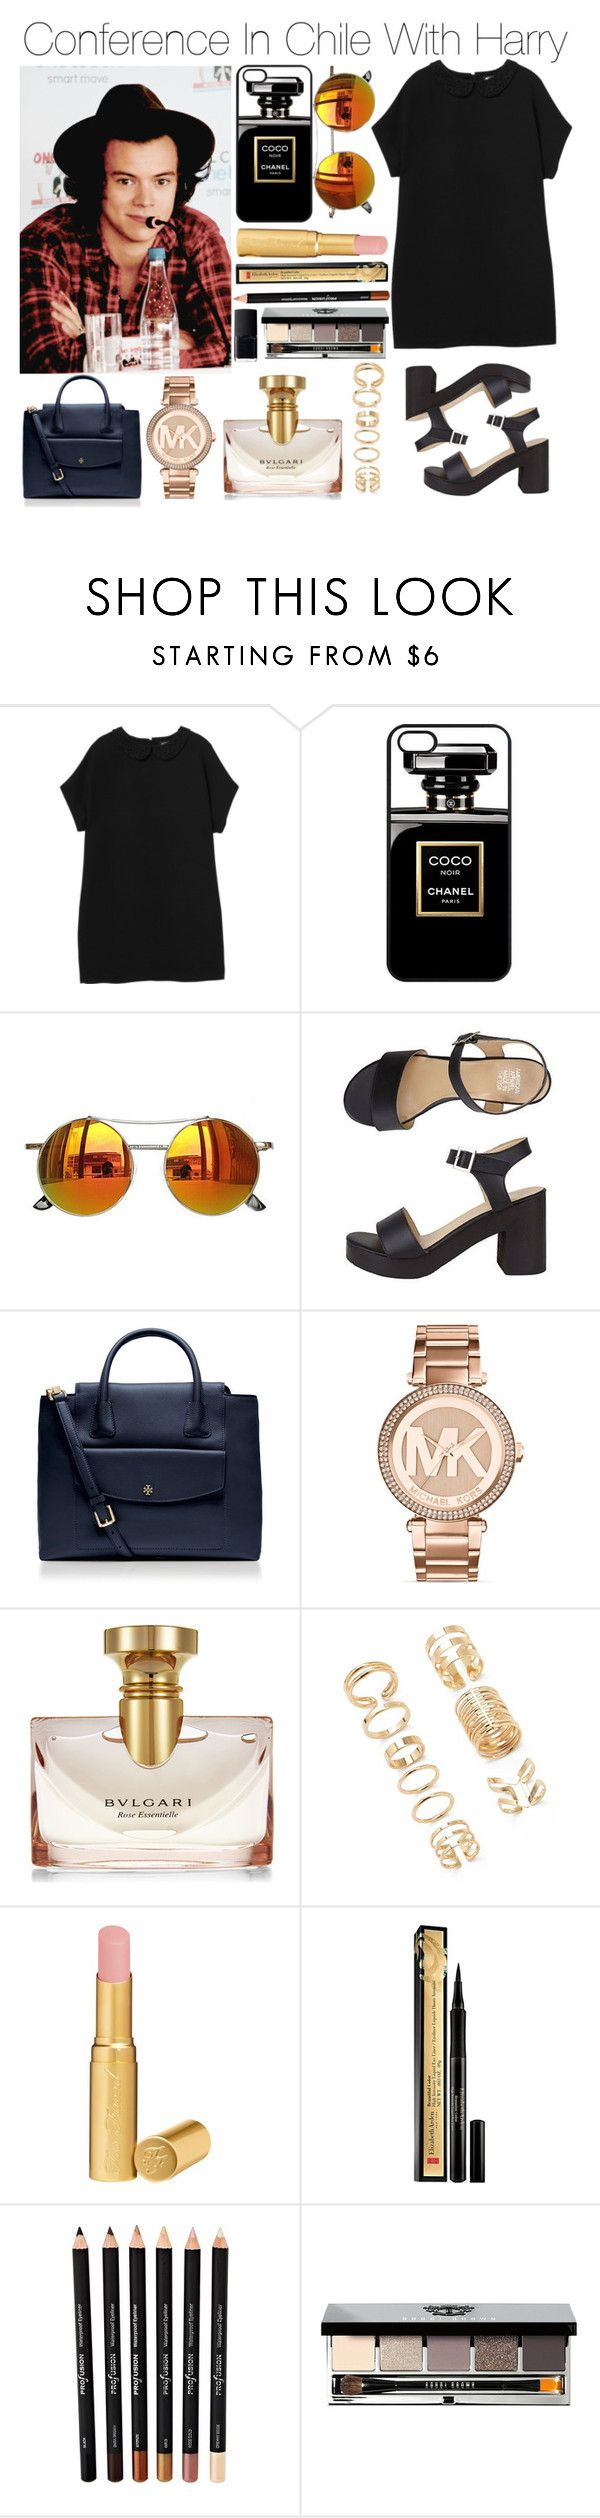 """Conference In Chile With Harry"" by lovingharryandjustin ❤ liked on Polyvore featuring Monki, Chicnova Fashion, American Apparel, Tory Burch, Michael Kors, Bulgari, Forever 21, Too Faced Cosmetics, Elizabeth Arden and Bobbi Brown Cosmetics"